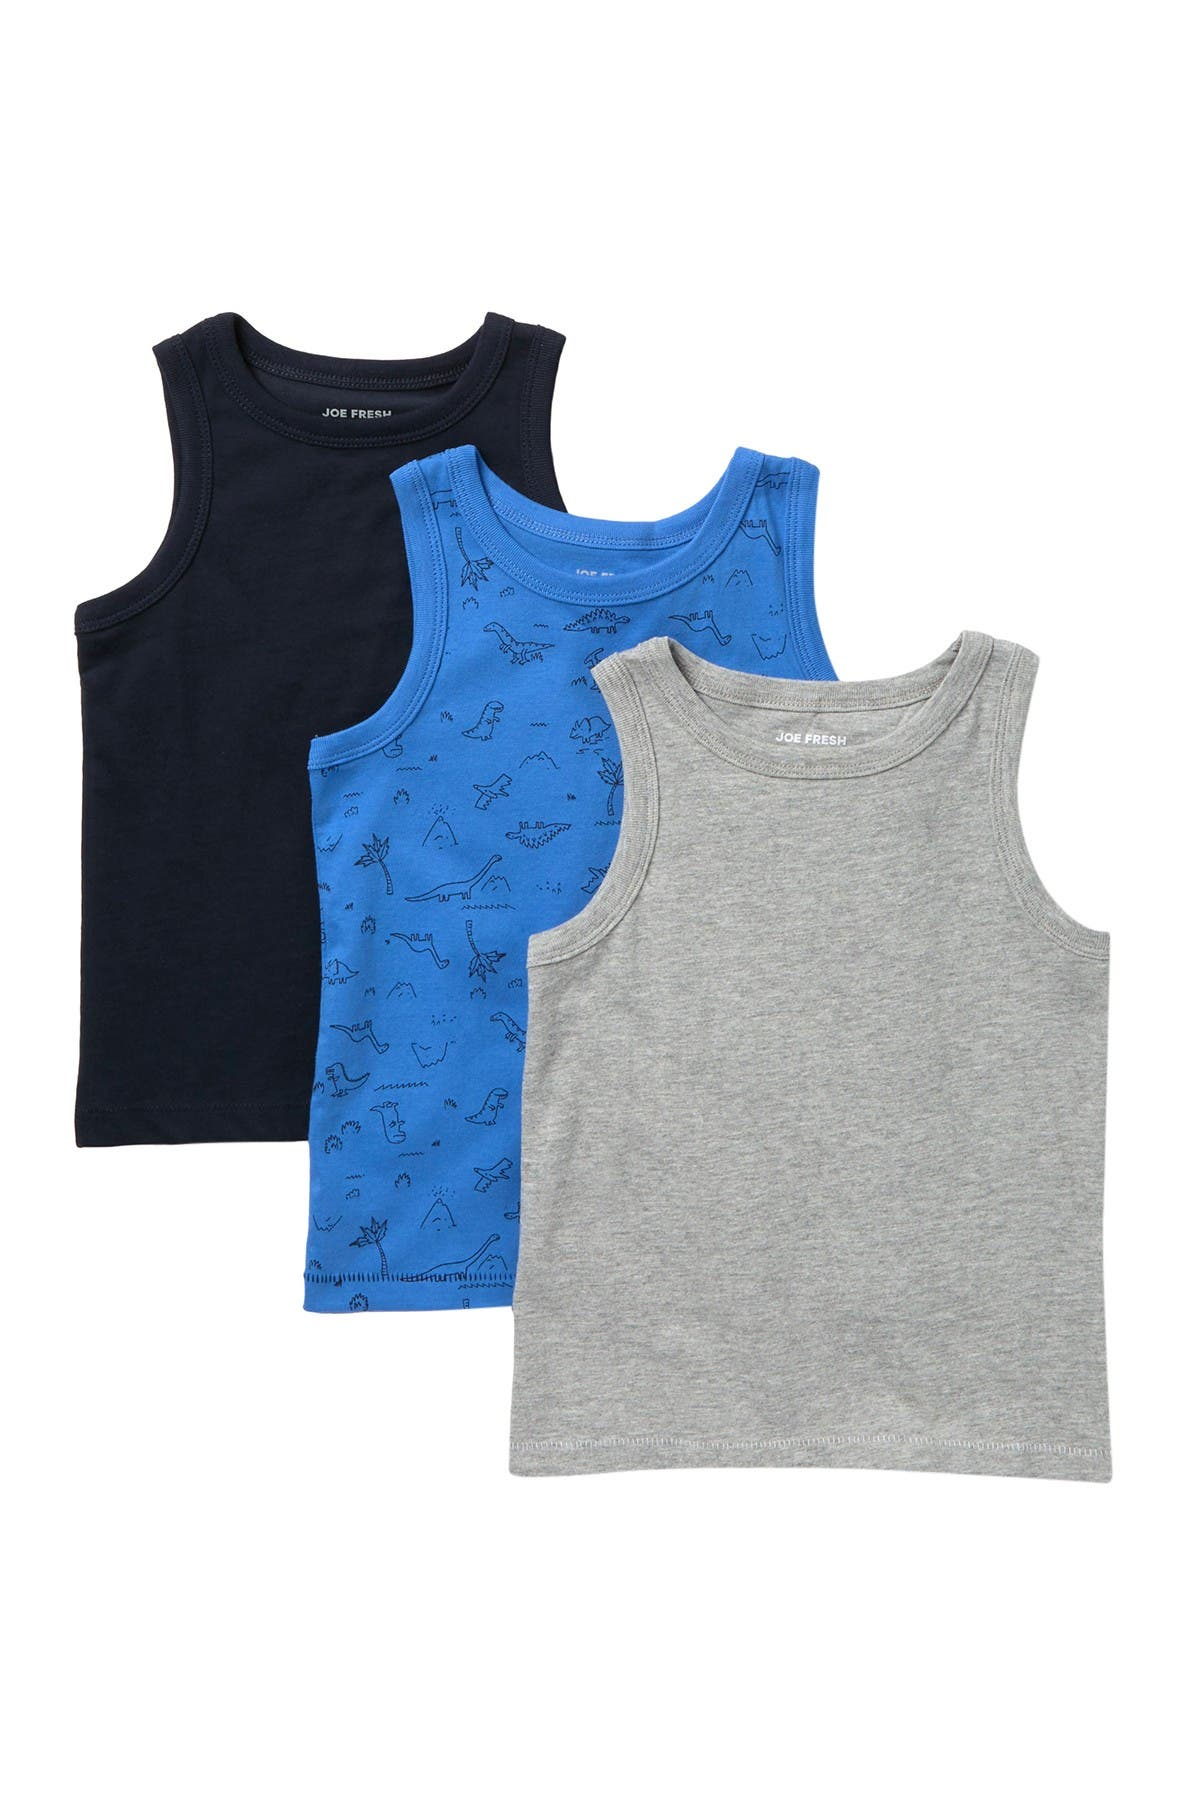 Image of Joe Fresh Tank Top - Pack of 3